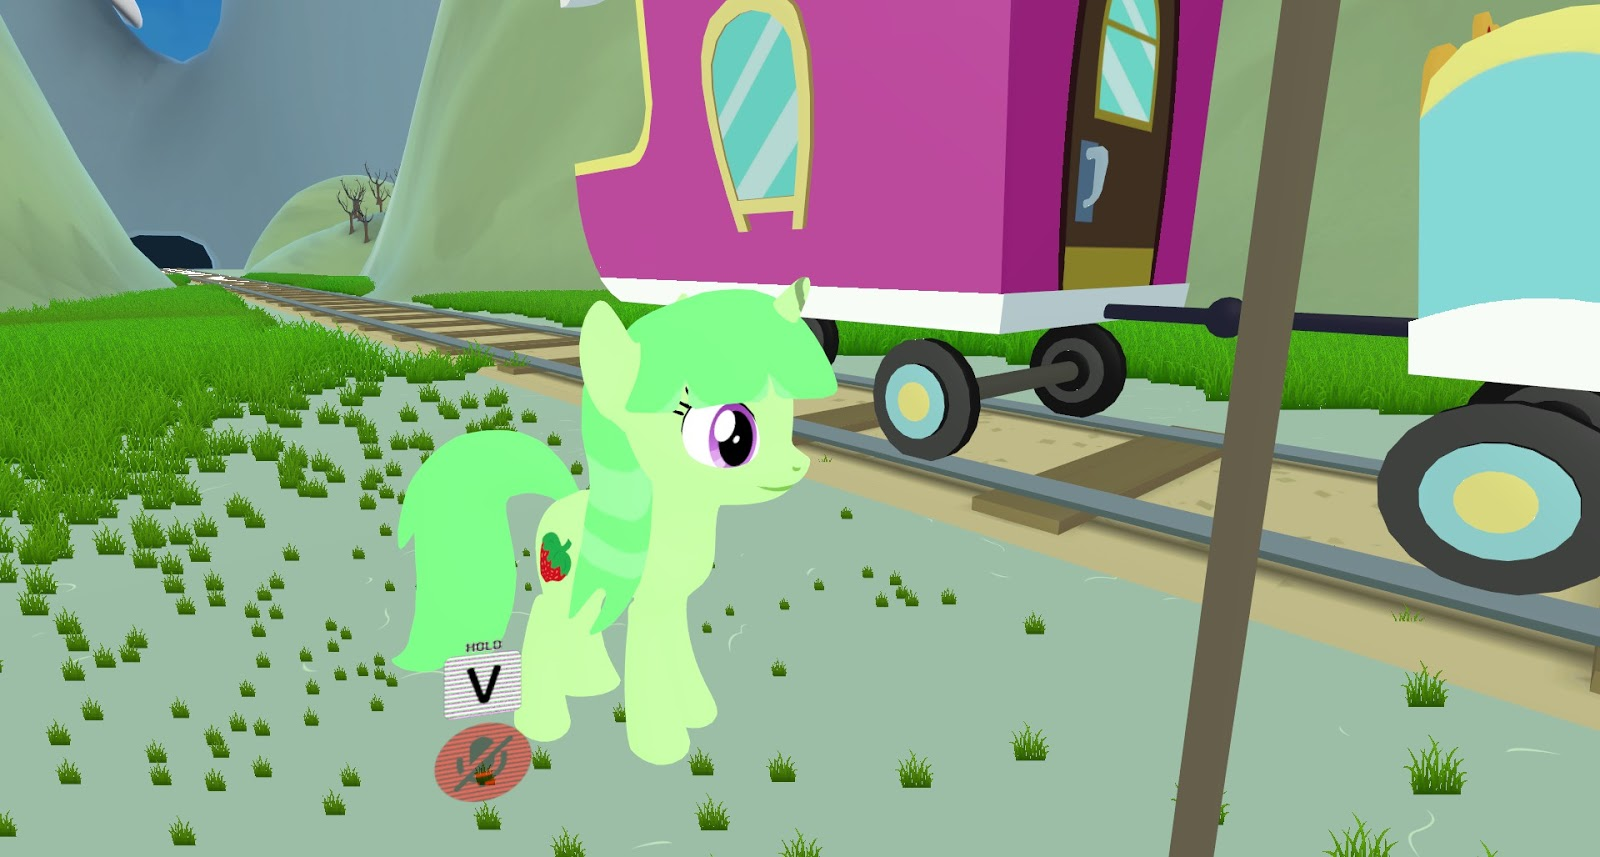 Equestria Daily - MLP Stuff!: VRChat Gets a Pony Server